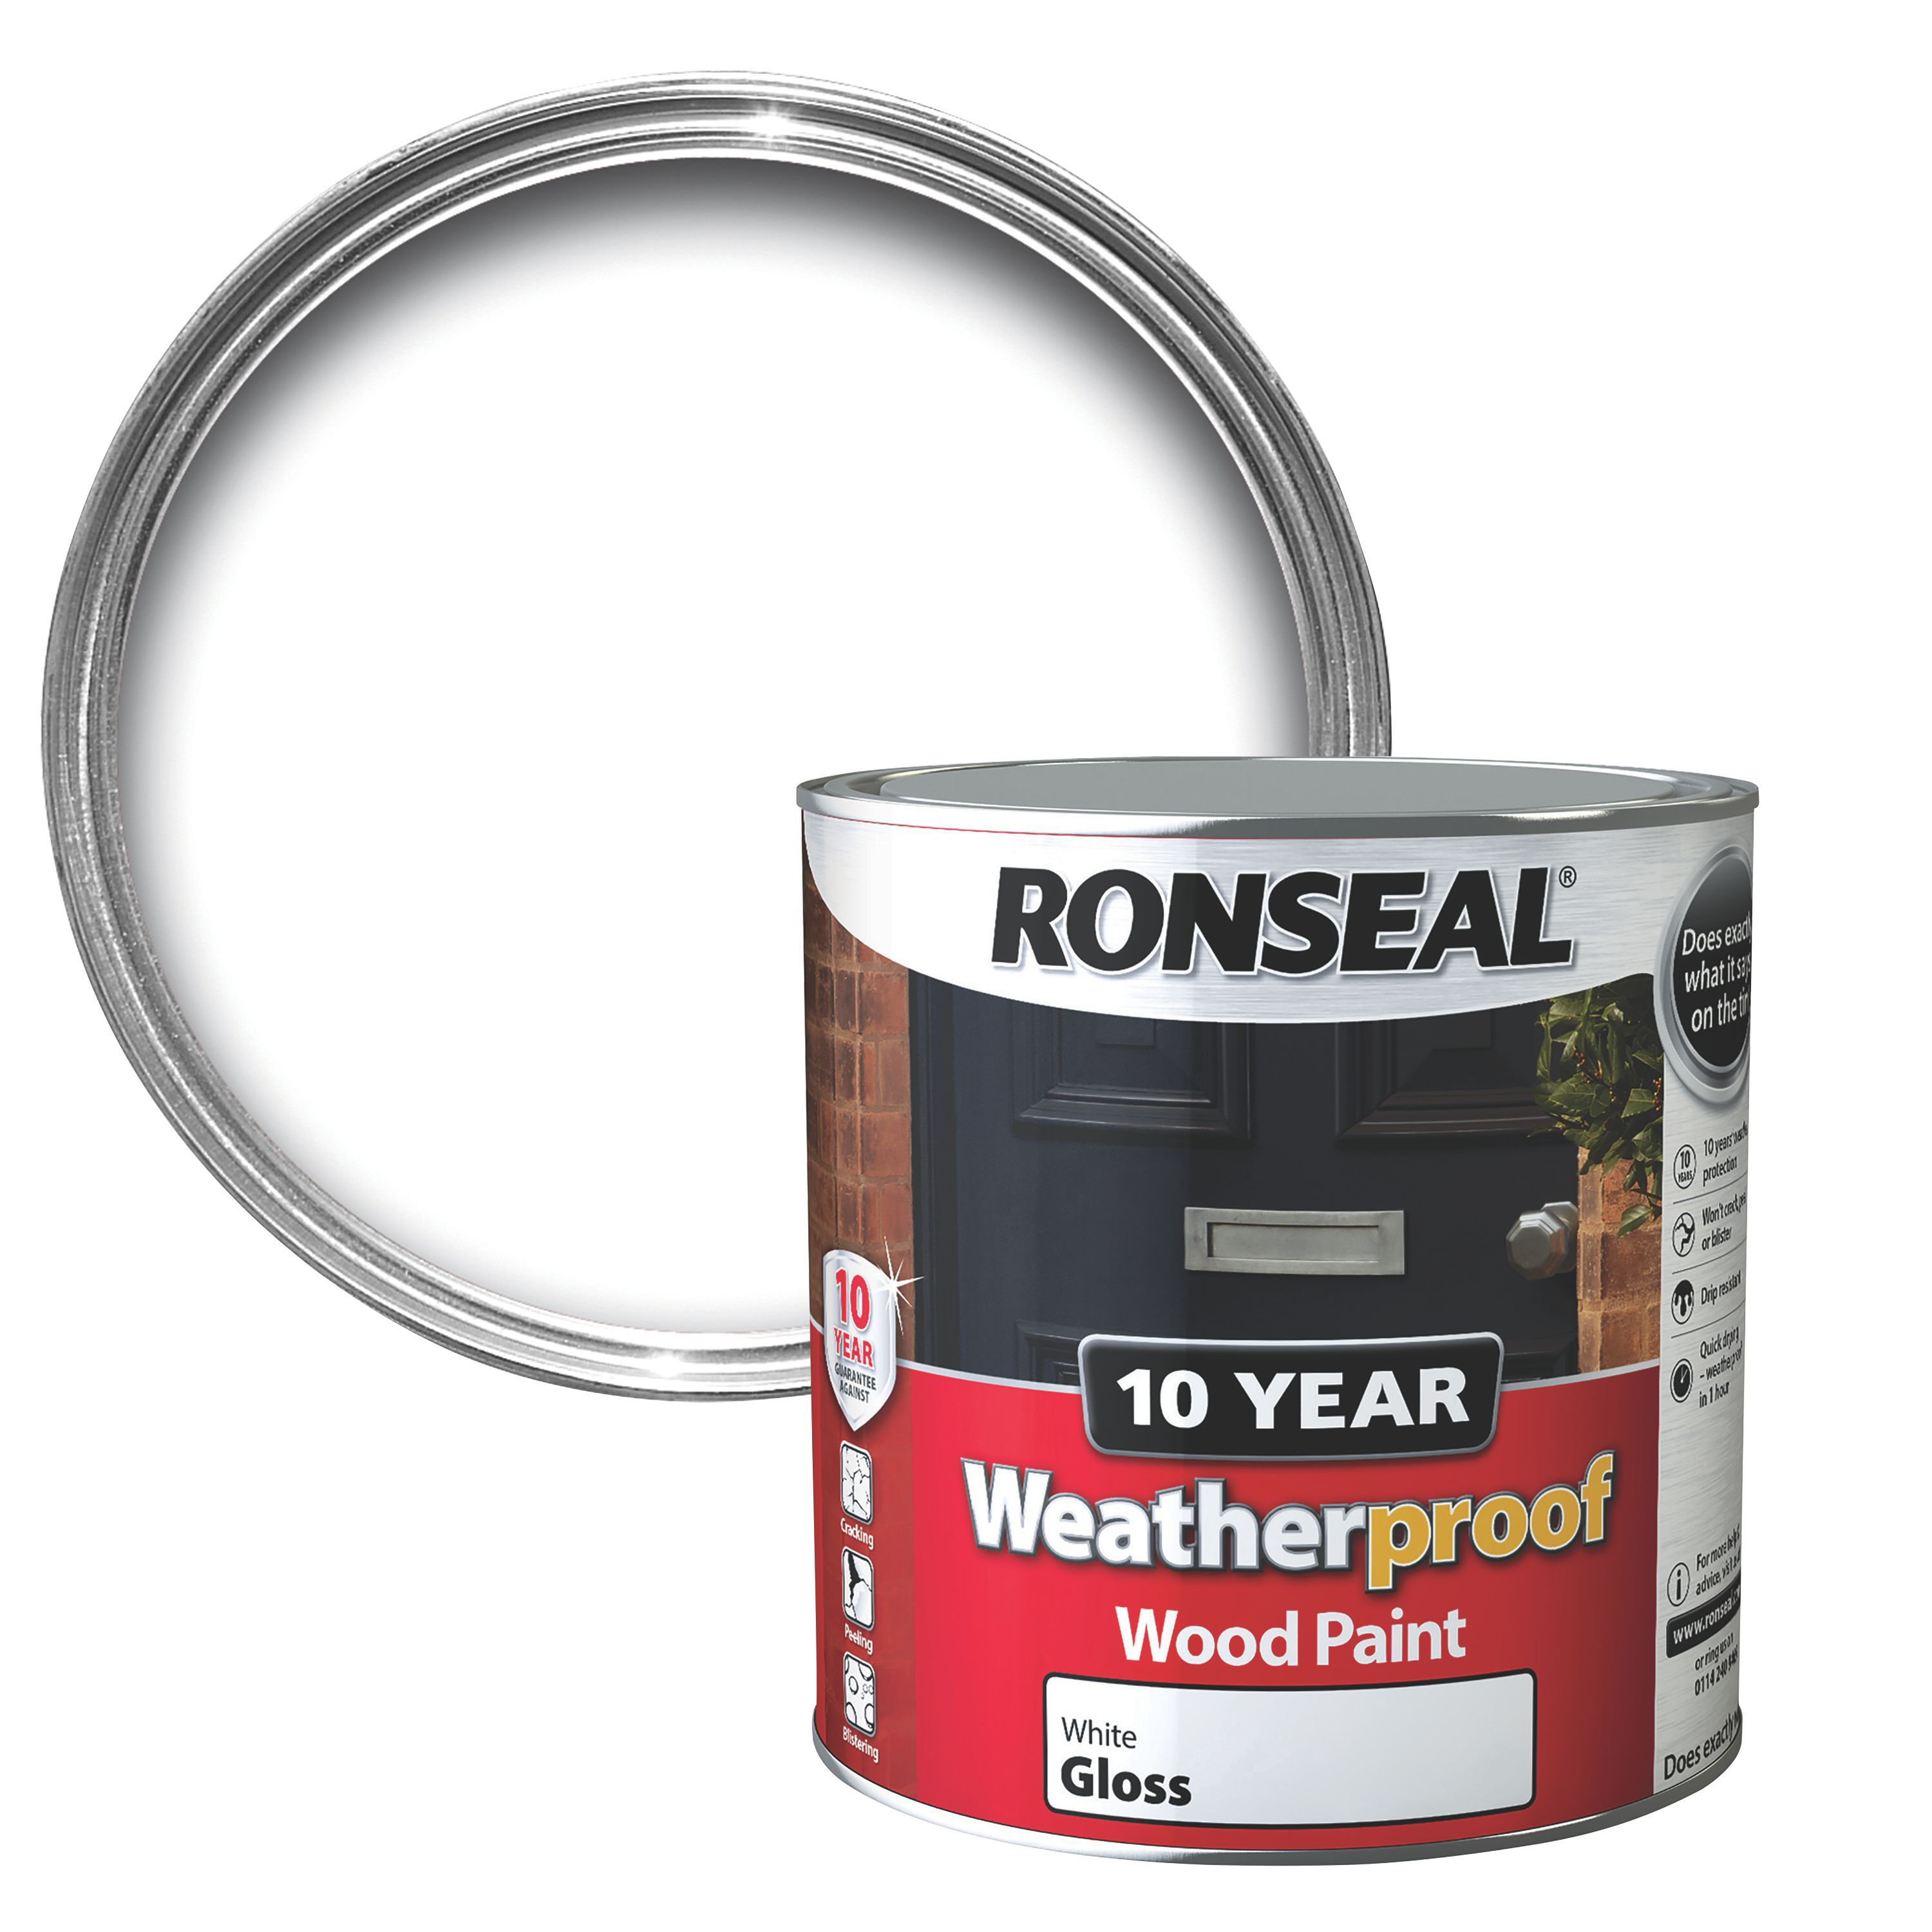 Ronseal exterior pure brilliant white gloss wood paint 2500ml departments tradepoint - Exterior white gloss paint image ...